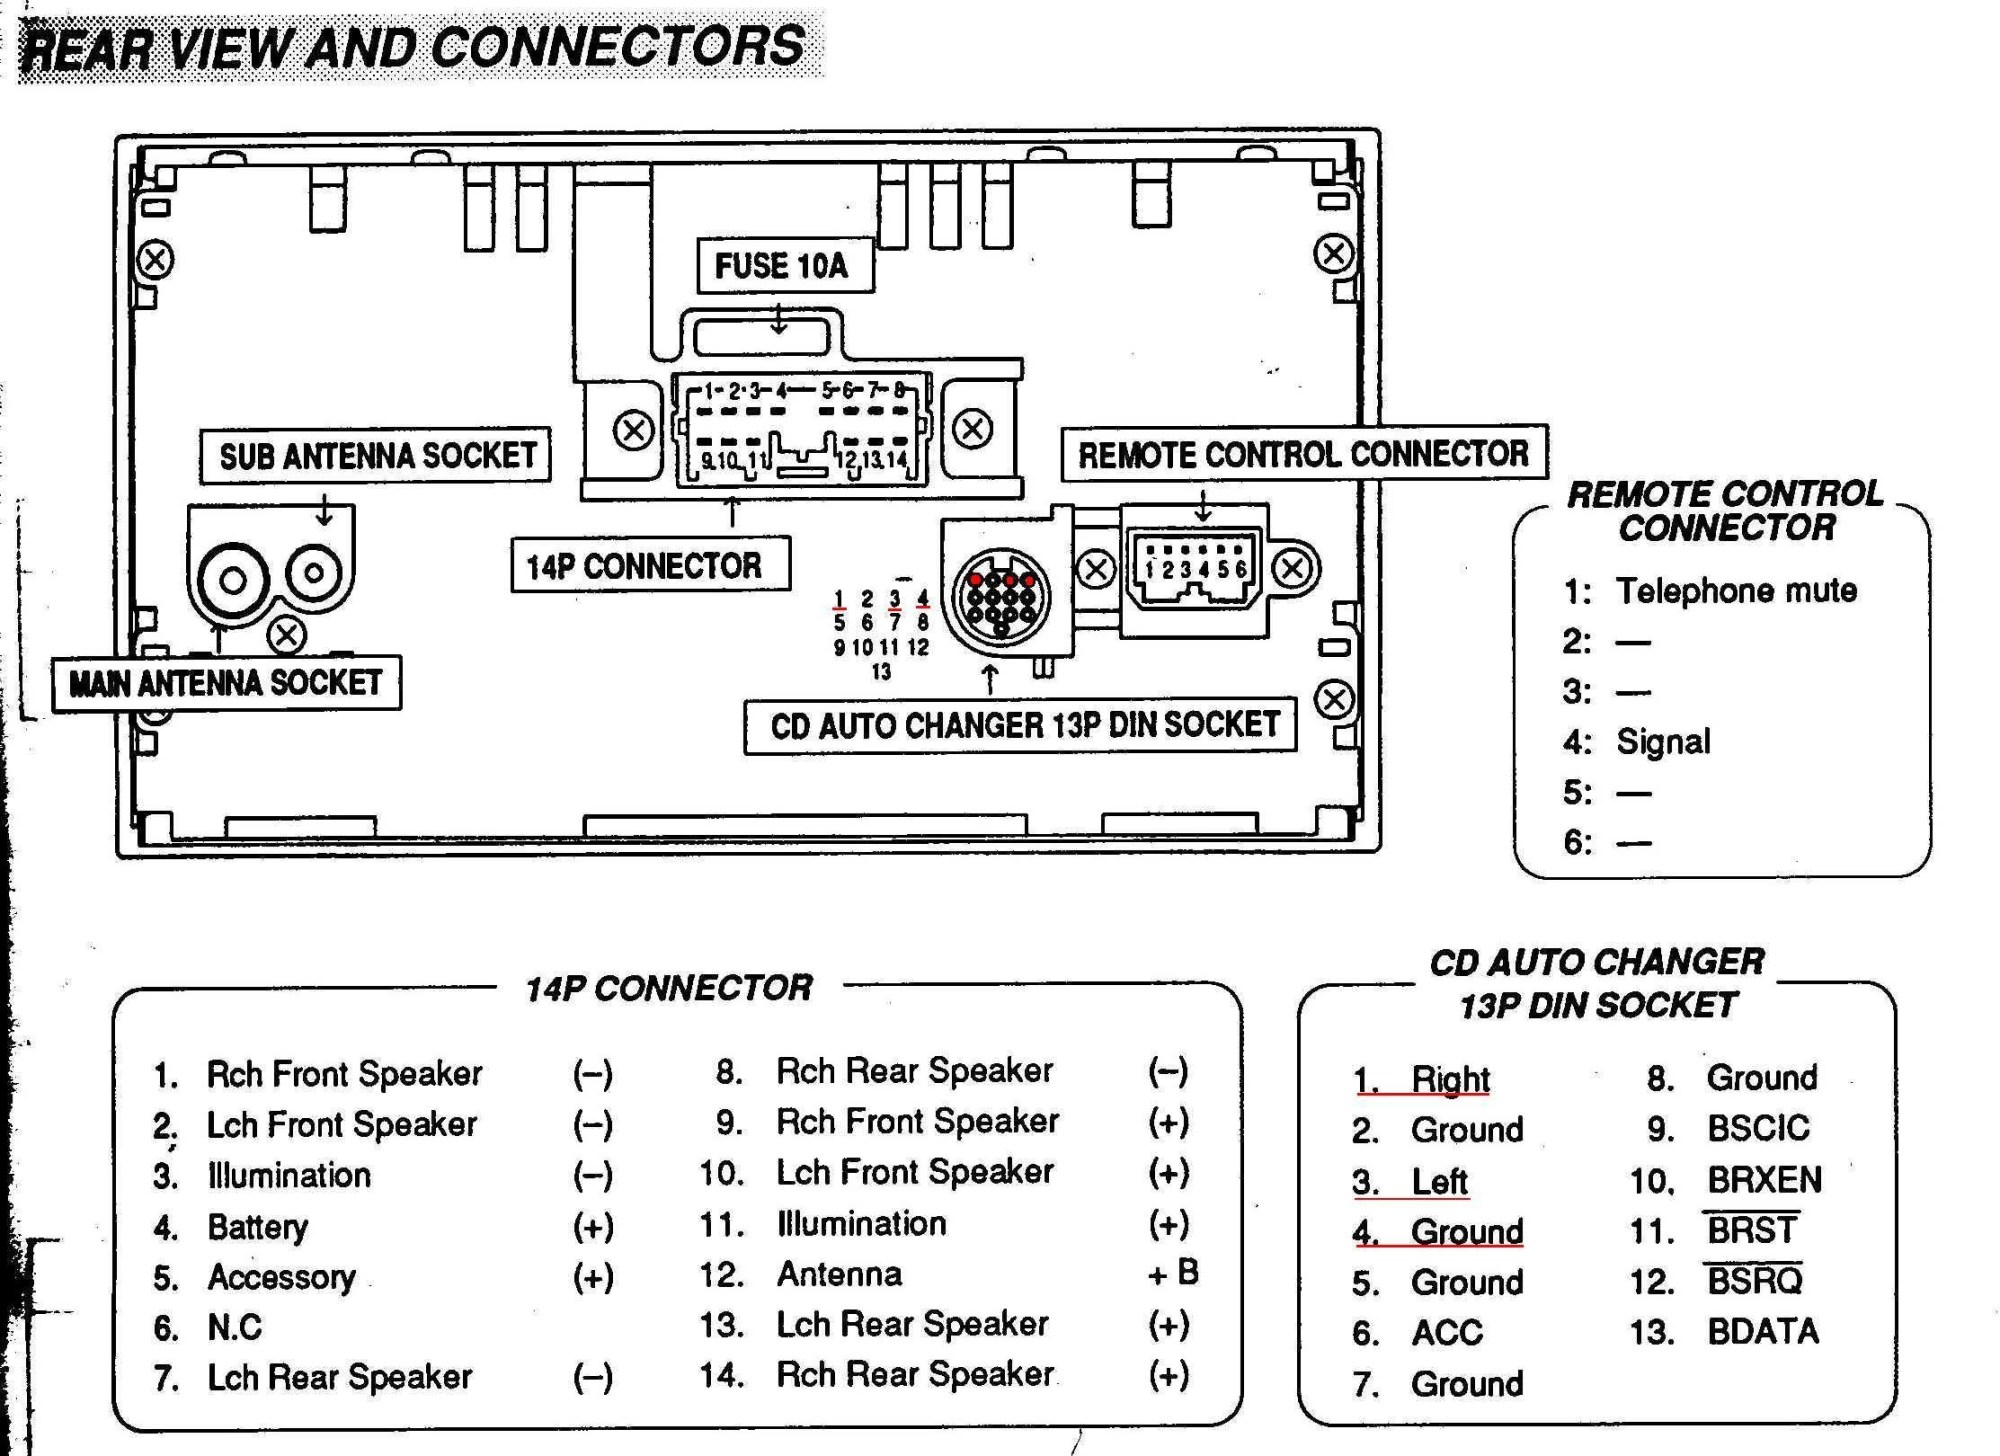 hight resolution of new mitsubishi stereo wiring diagram wiring diagram image 2000 mercury cougar radio wiring diagram 2000 mitsubishi